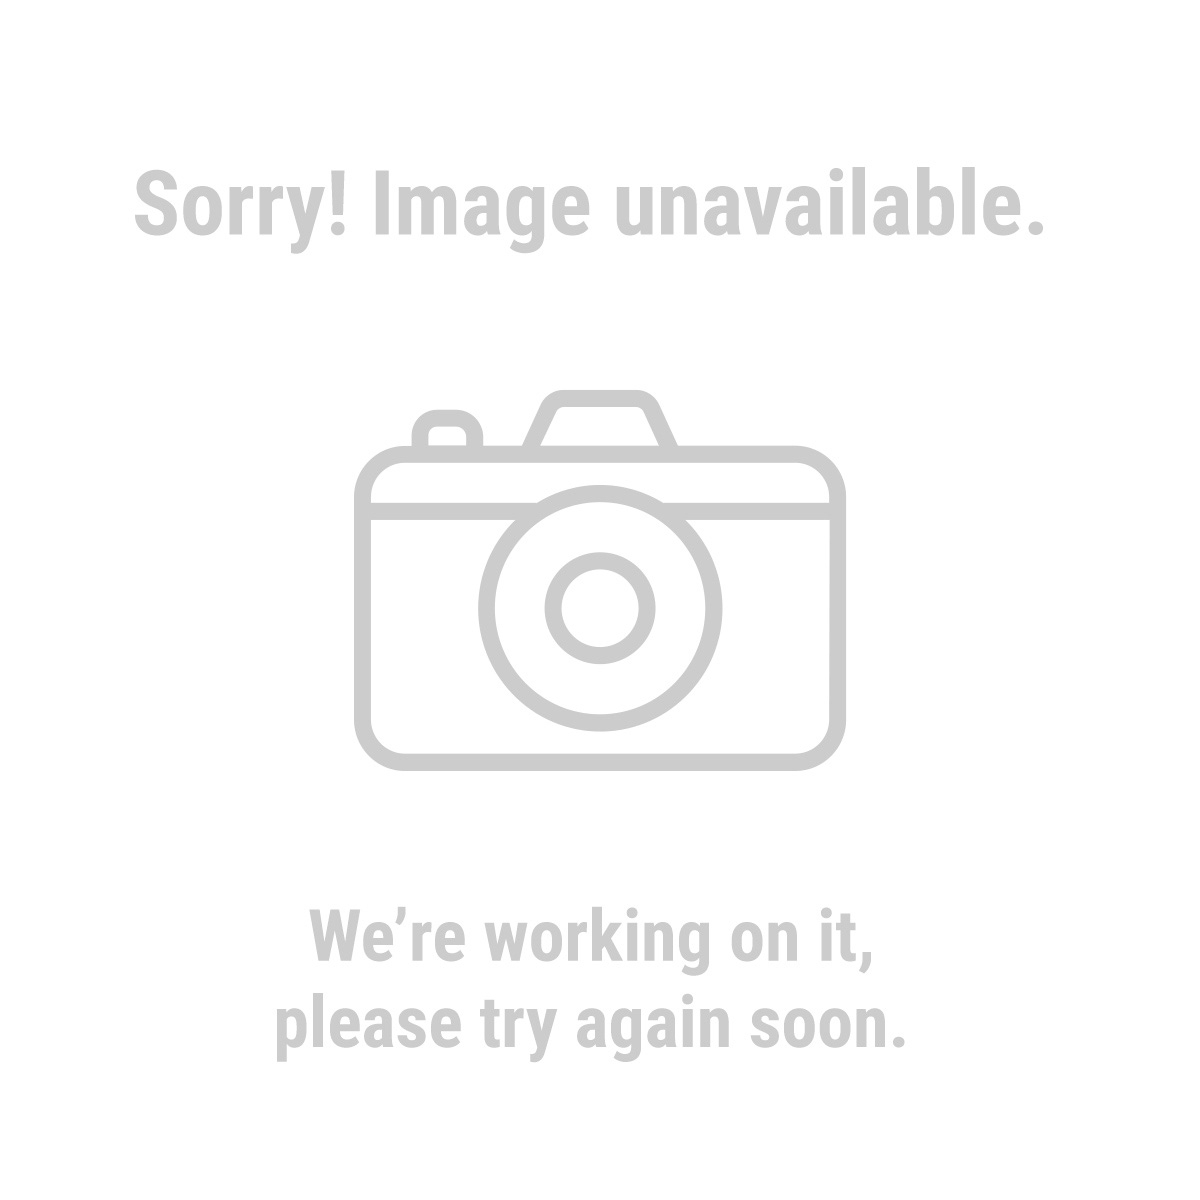 94990 Planer Replacement Blades - Pack of 2